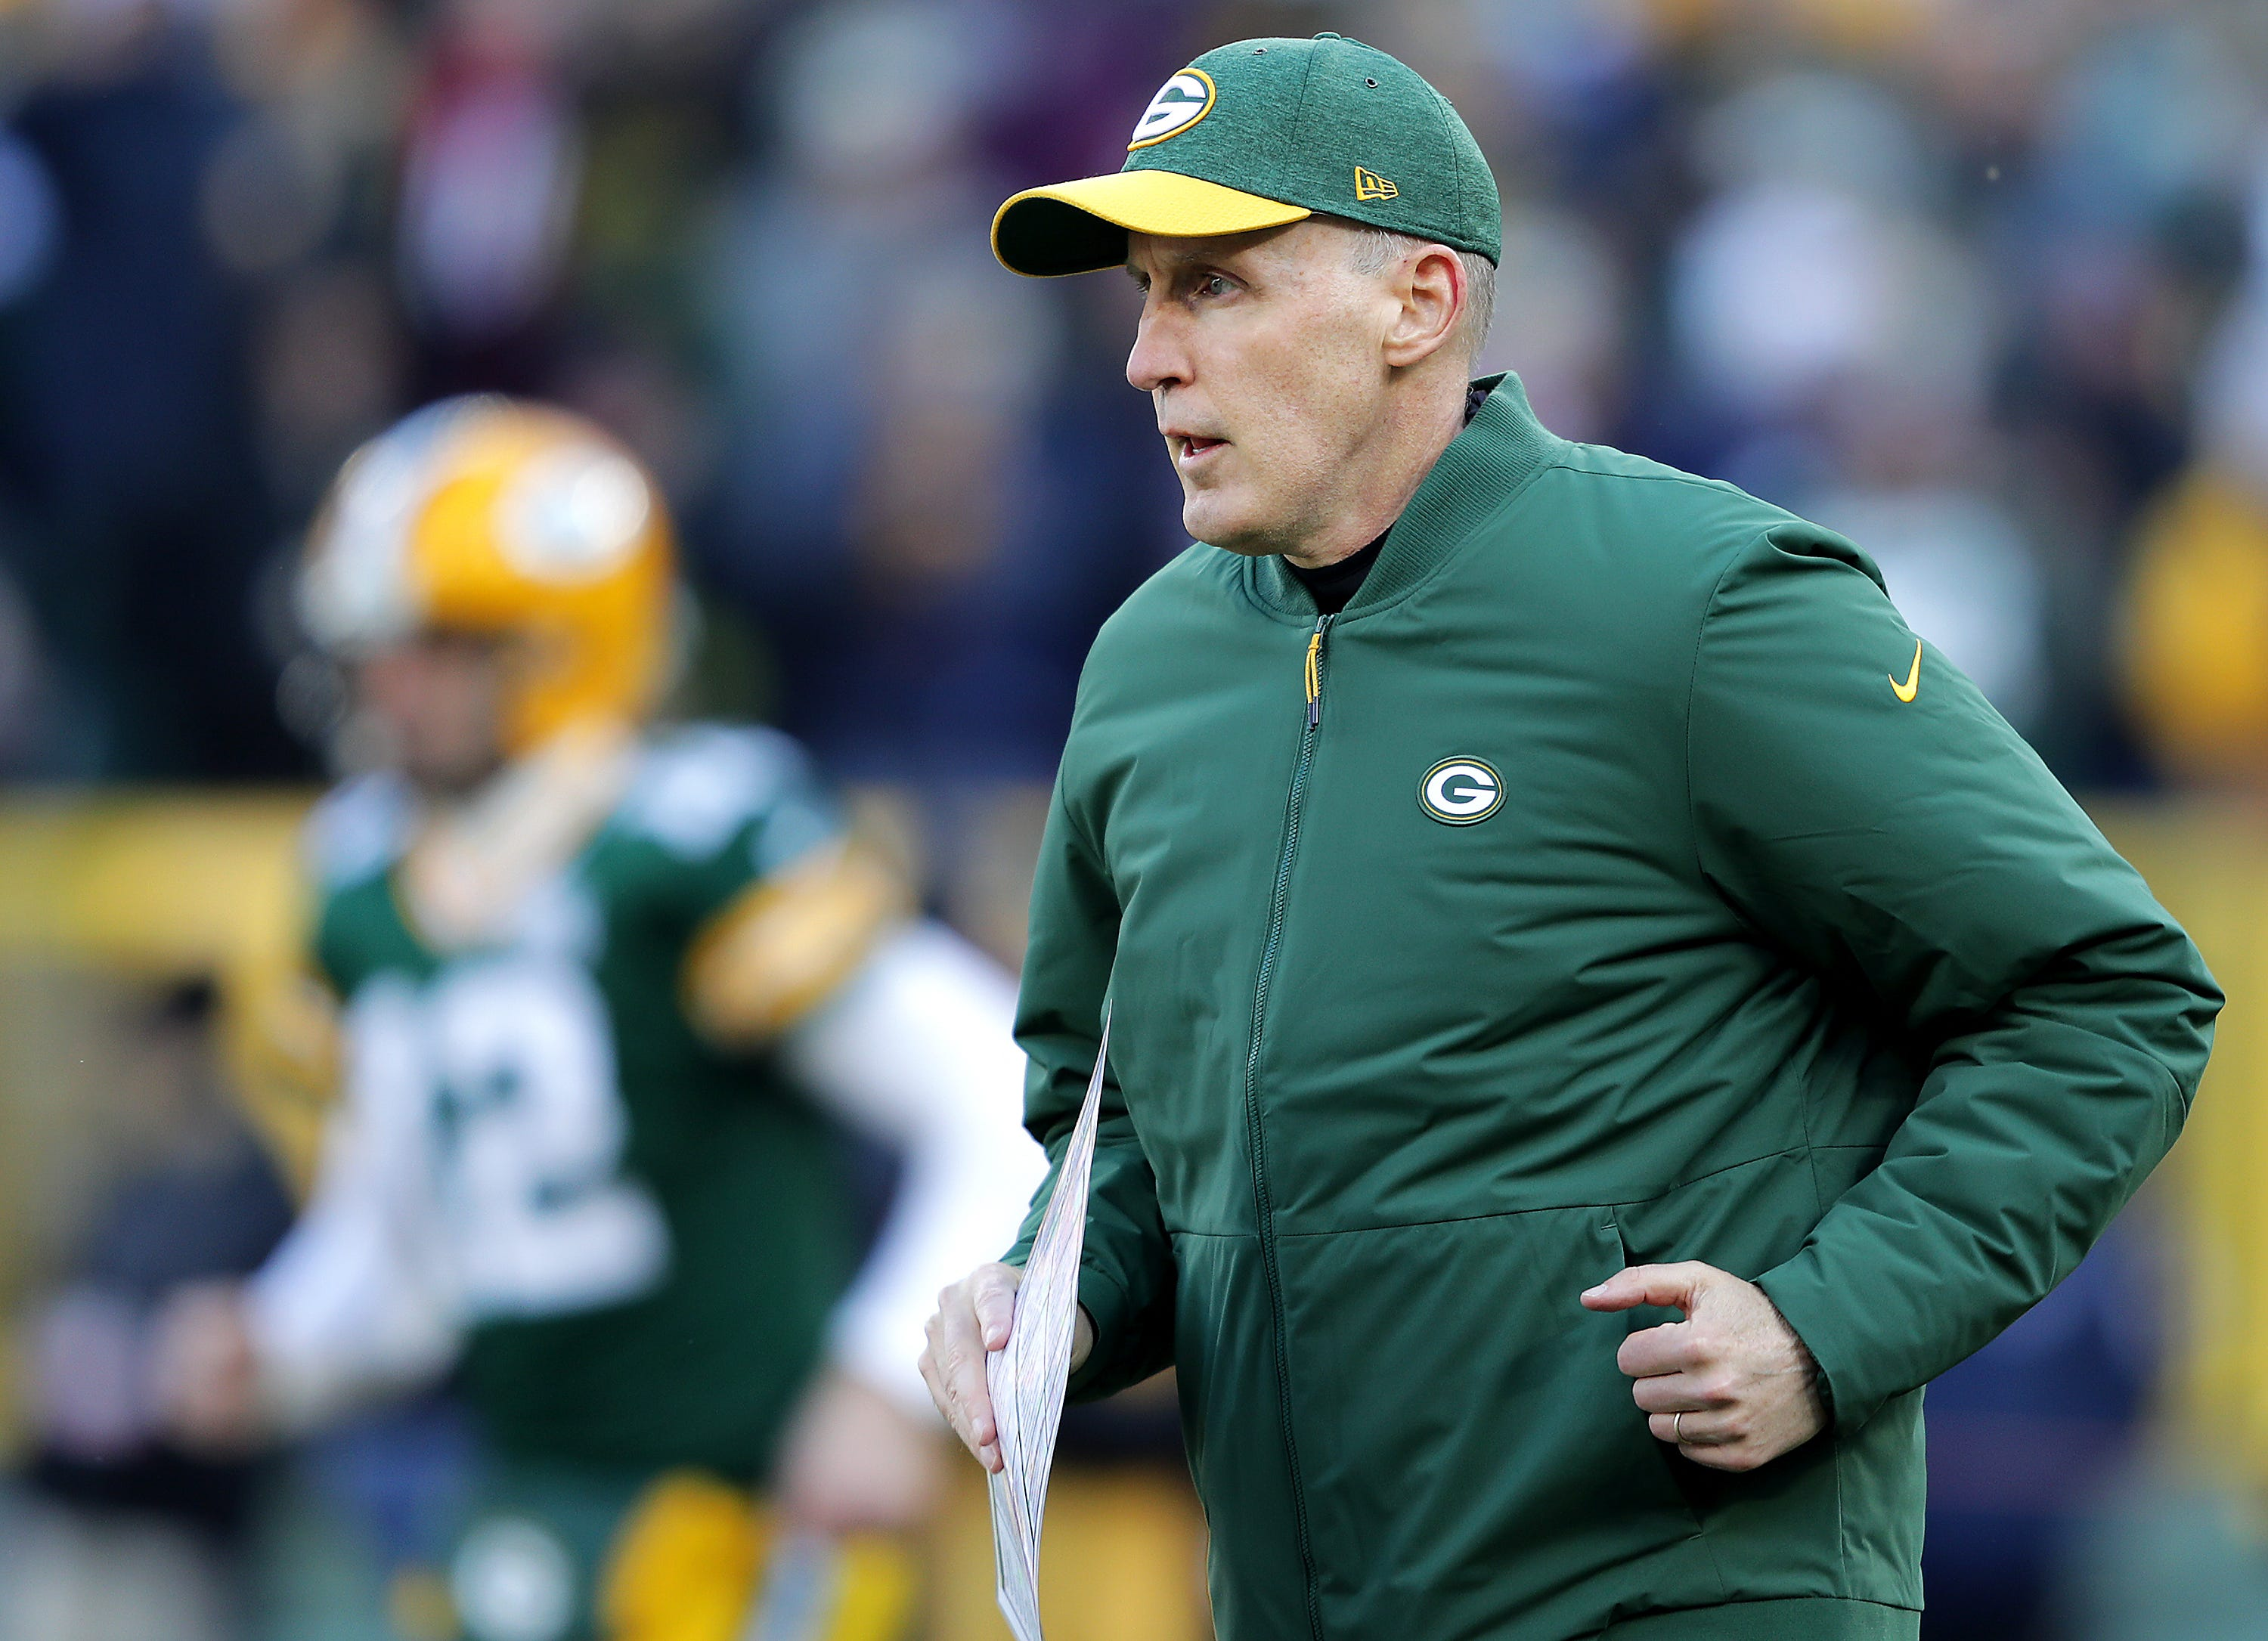 Silverstein: With strong finish, many factors could favor Joe Philbin as Packers' head coach